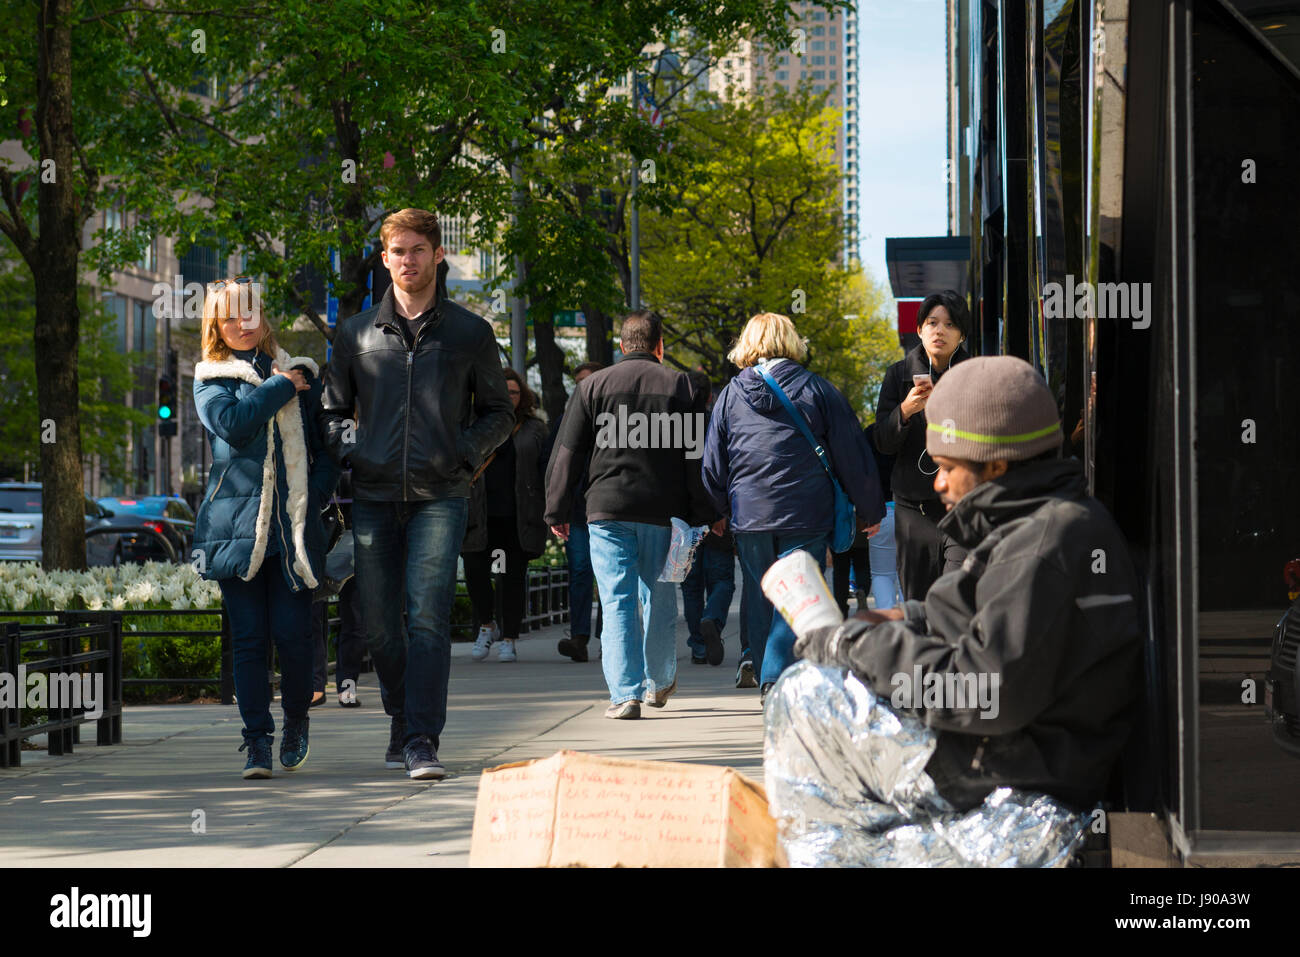 Chicago Illinois Near North Side N Michigan Avenue Magnificent Mile pavement pavement scene beggar homeless US Navy - Stock Image